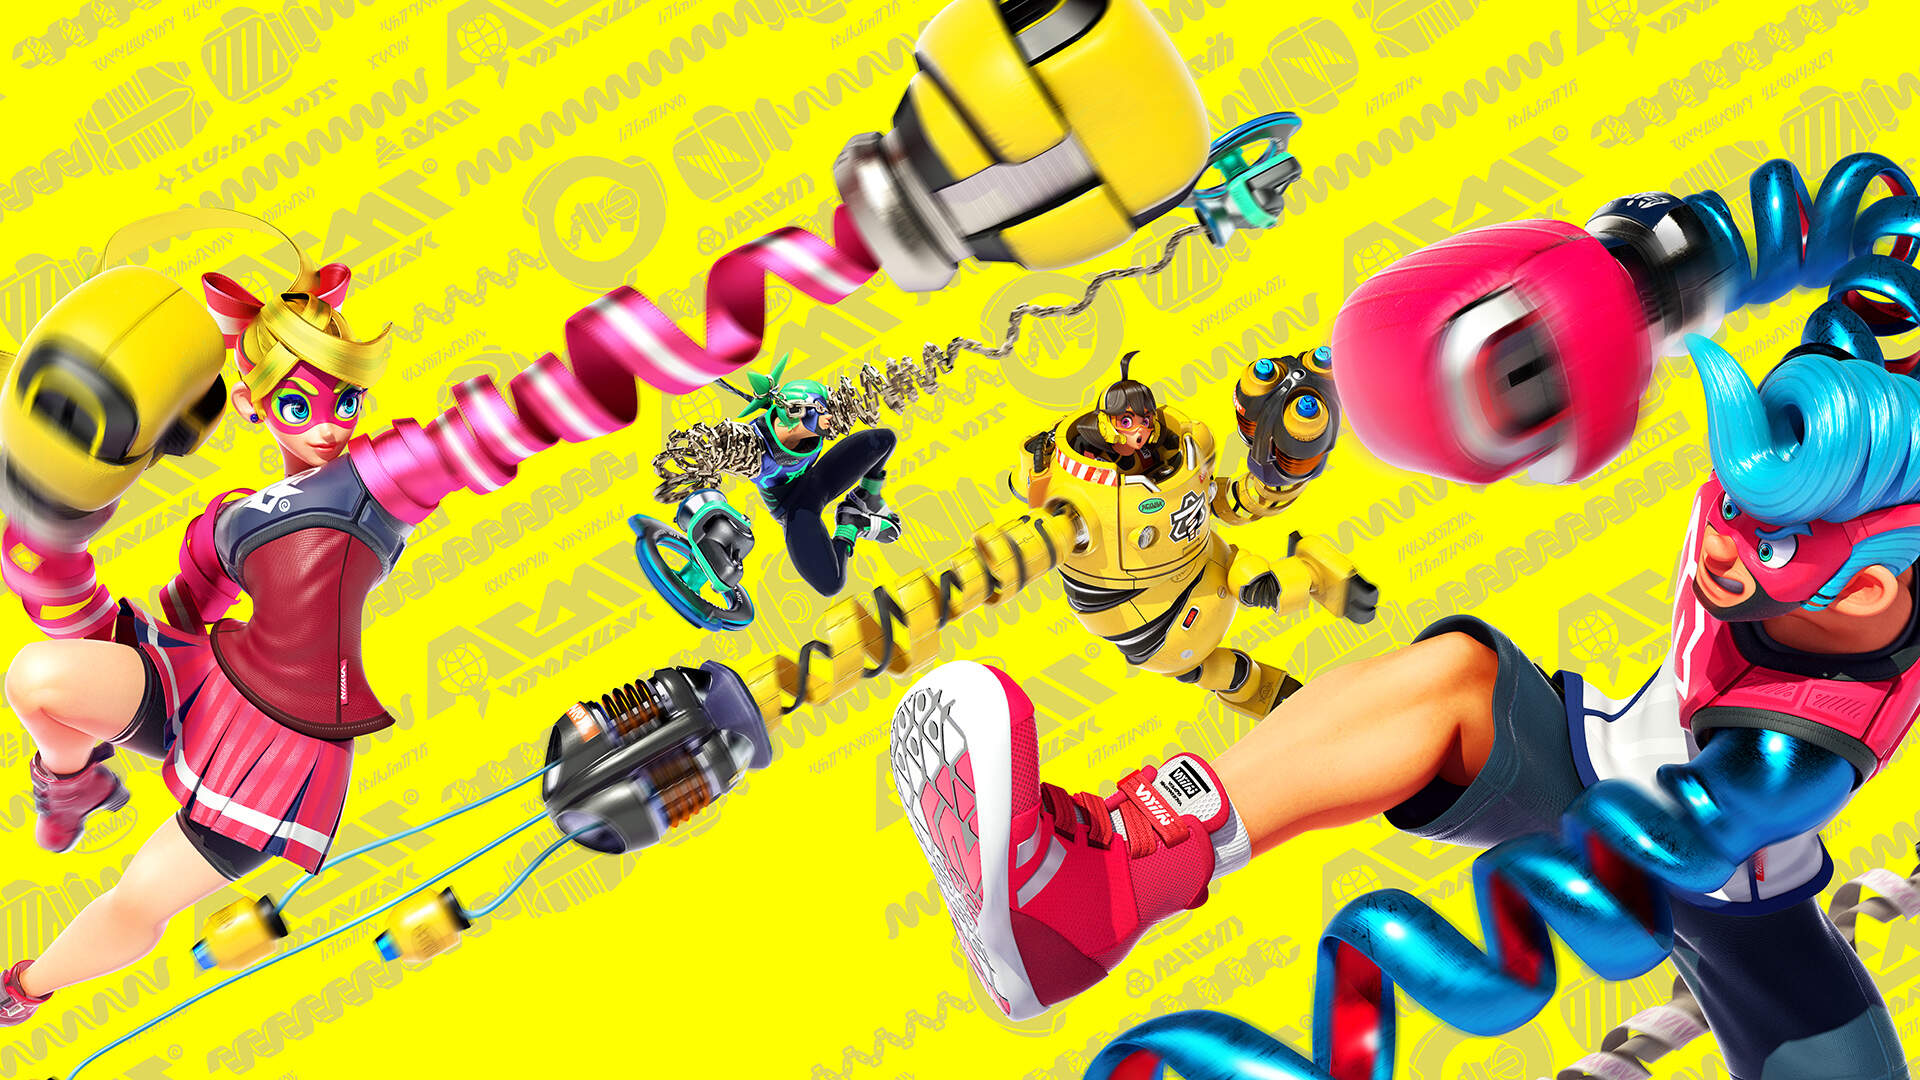 Arms is the Nintendo Underdog That Brought Us All Together